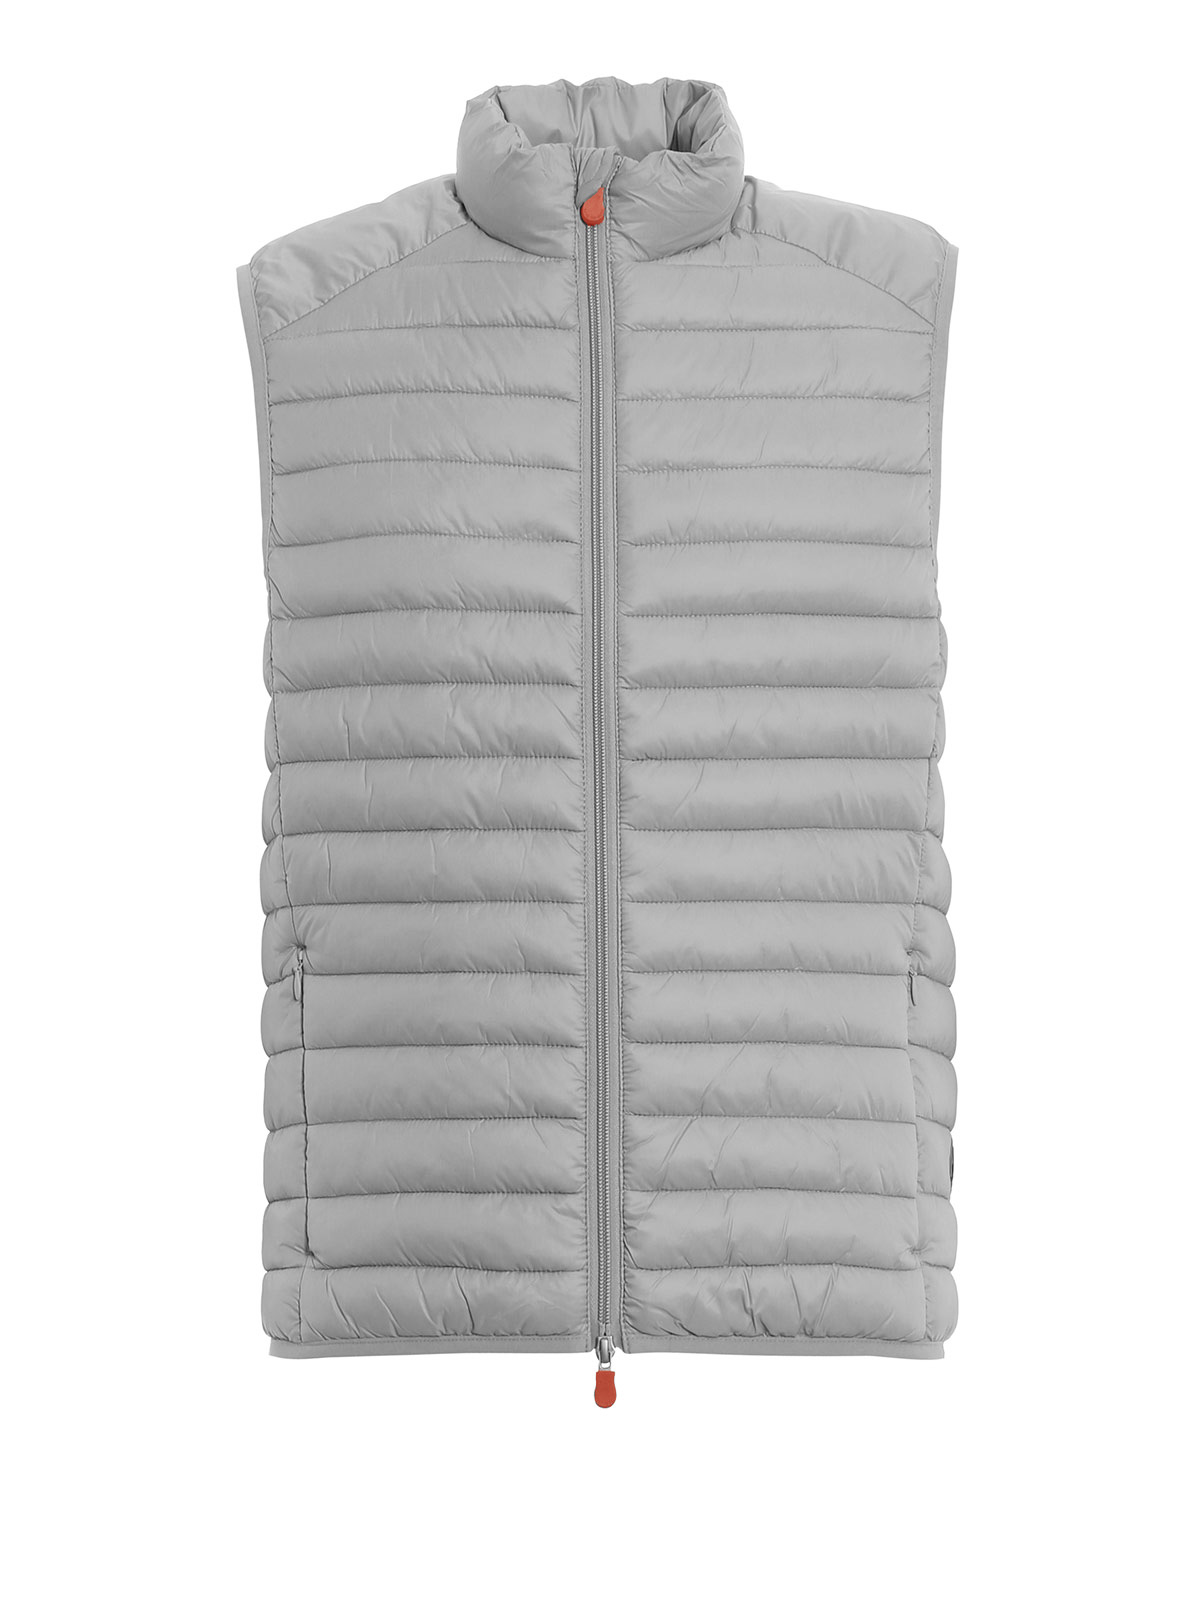 buy online 653d6 3b5dc SAVE THE DUCK Gilet Uomo D8241M GIGA6